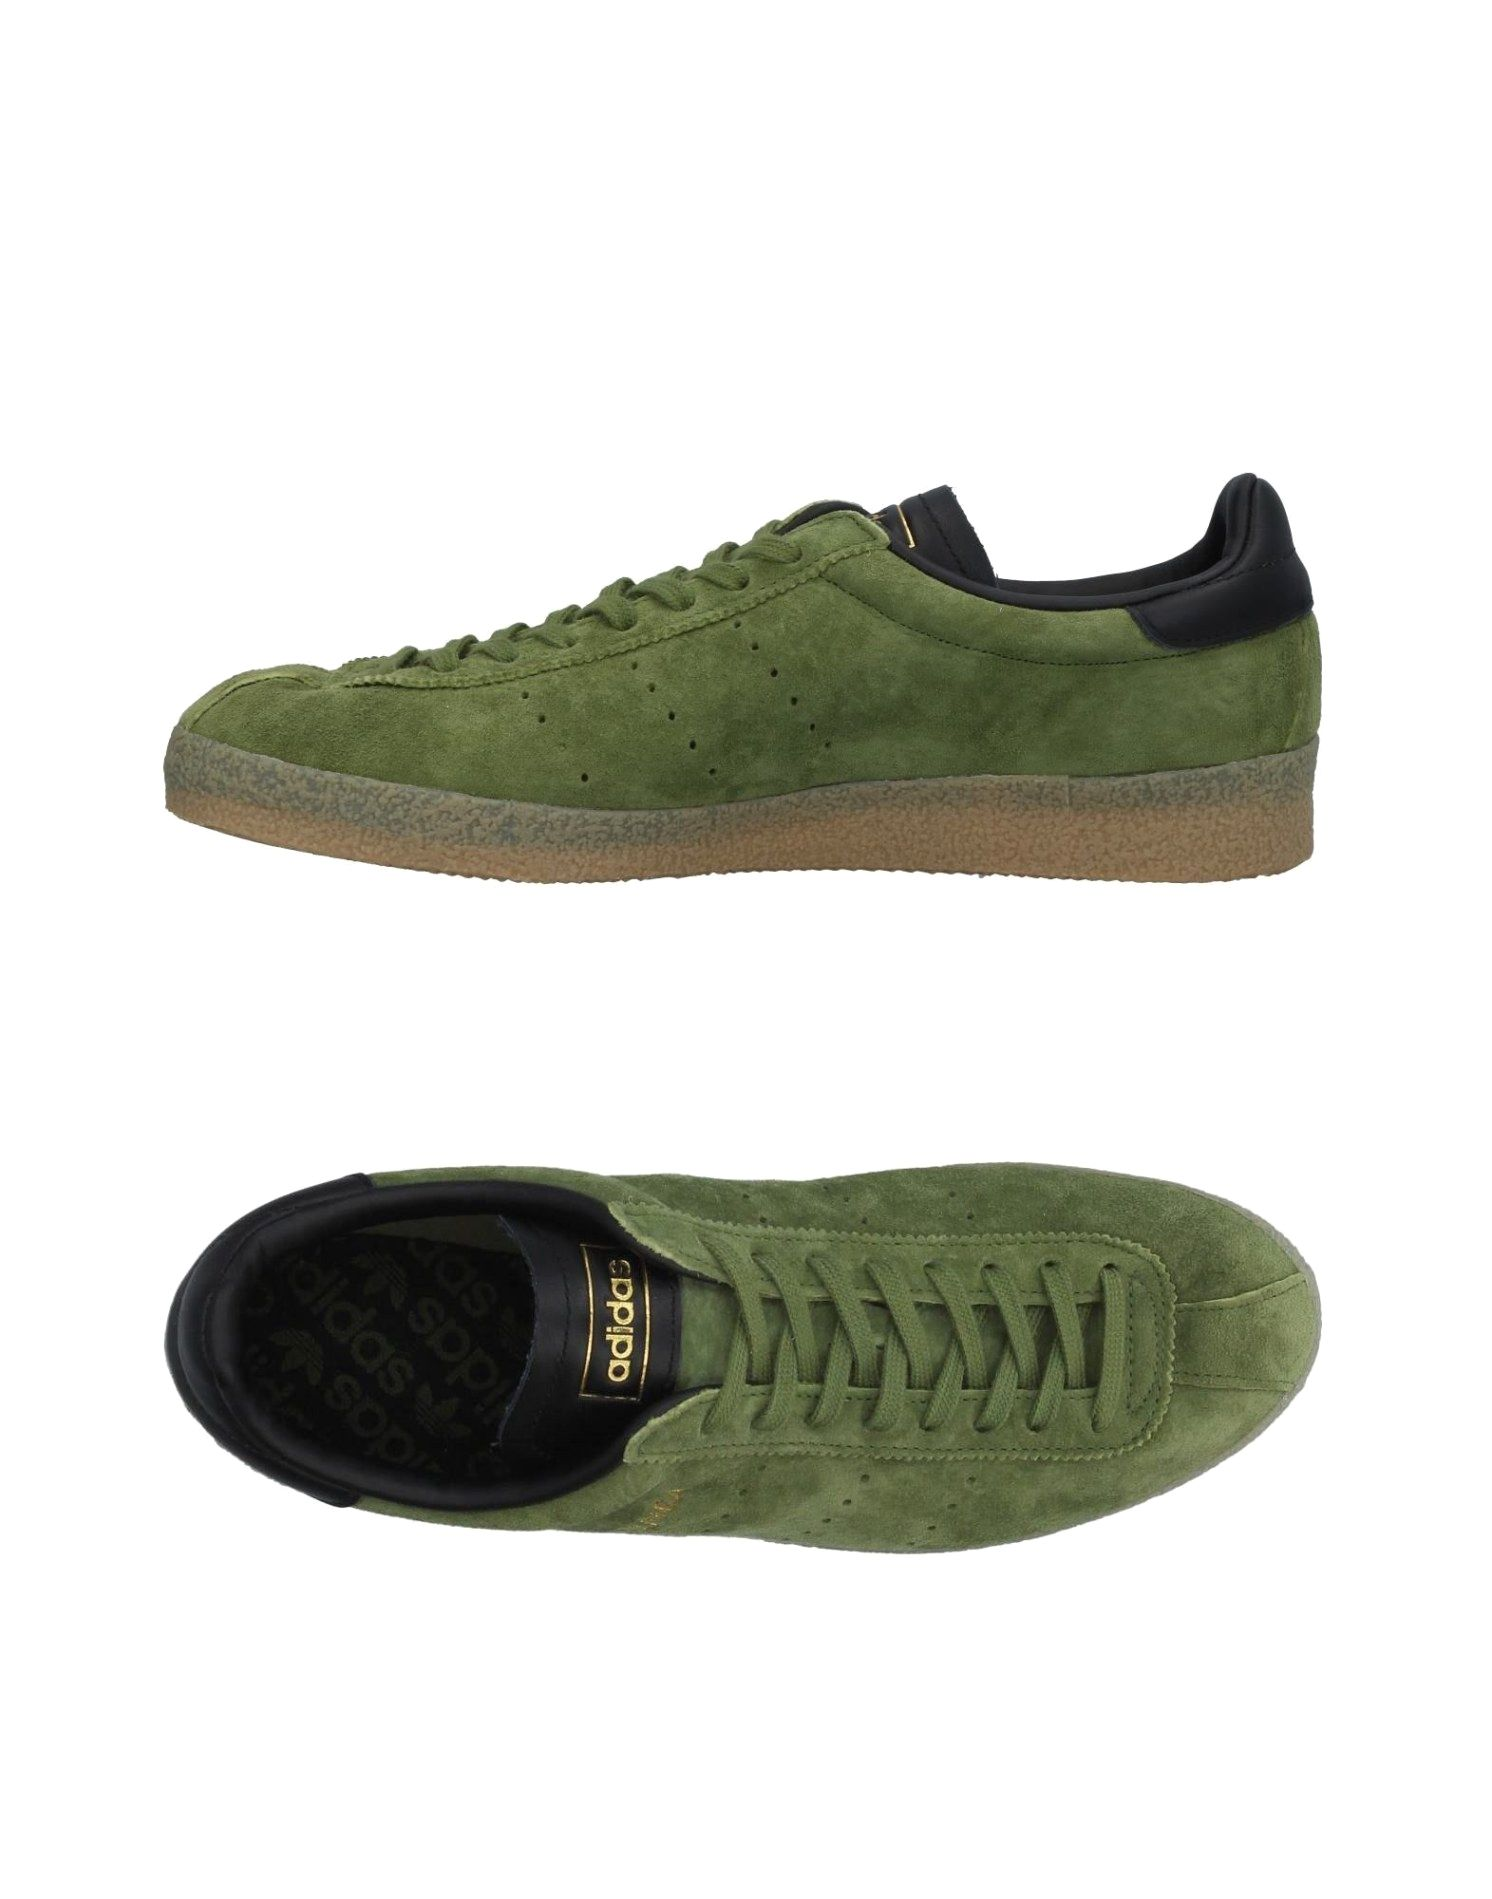 36ed9e47ce4 Shopping For Men s Sneakers. Do you need more info on sneakers  In that  case please click here for additional information. Related info.